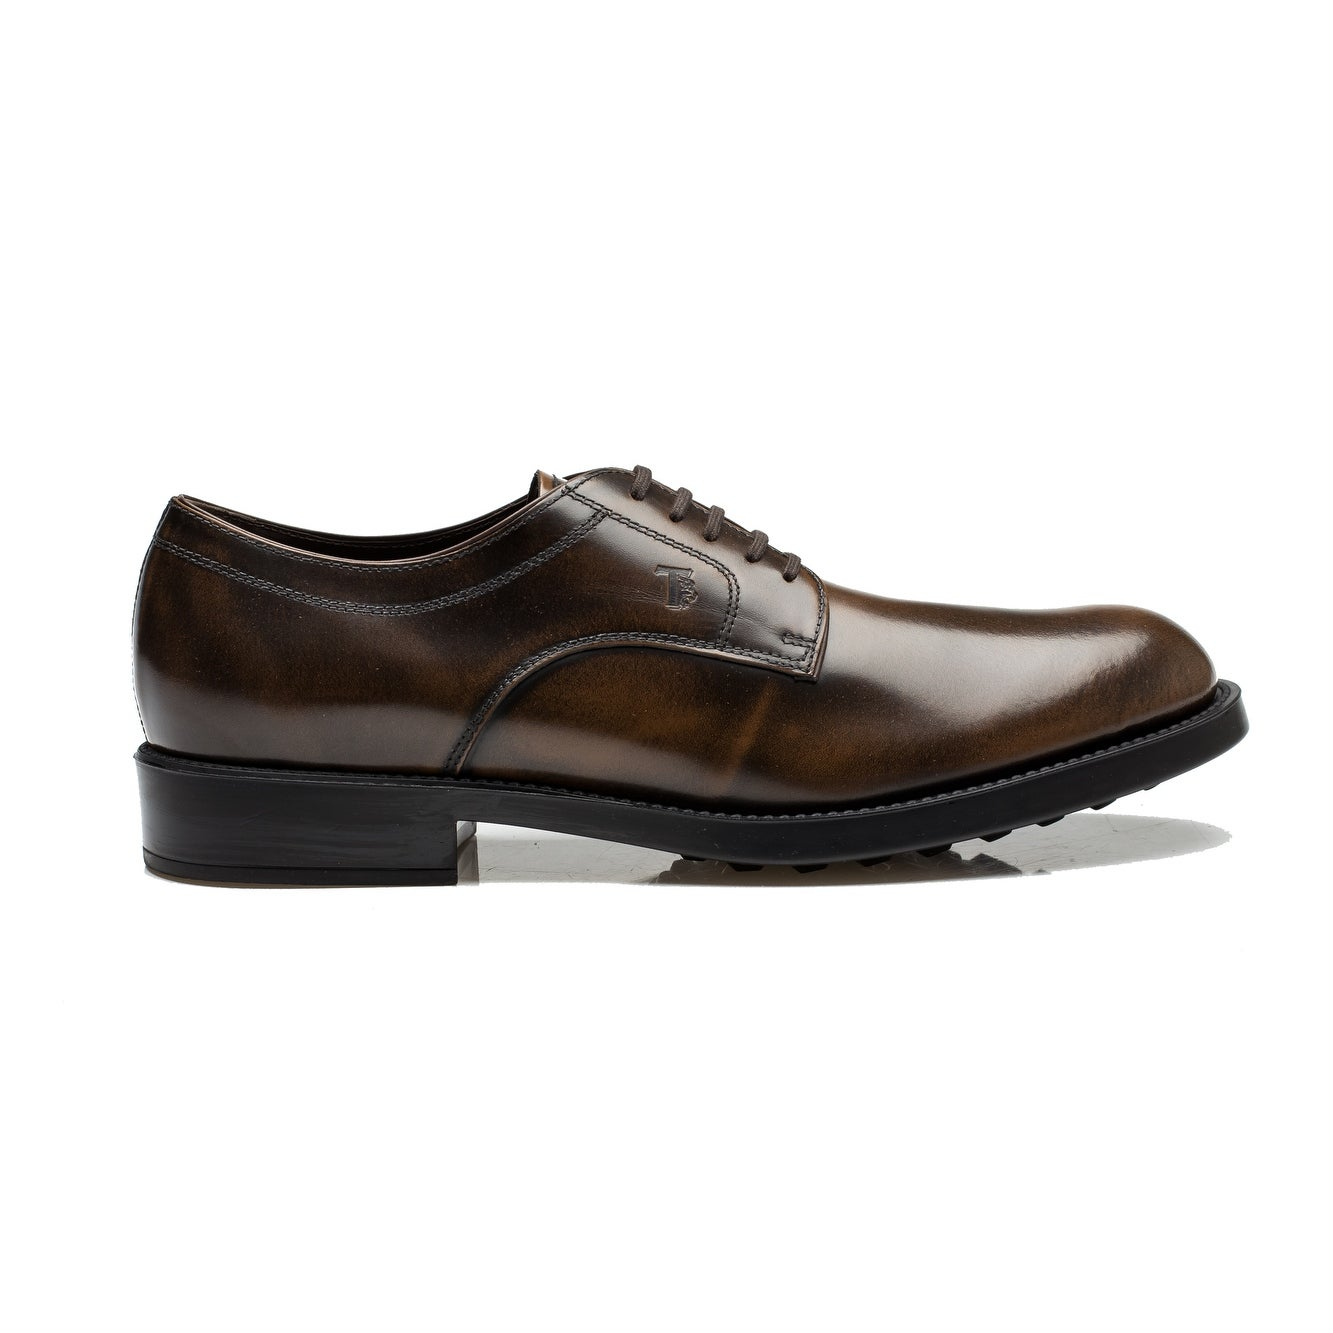 34fe9bc5432 Shop Tod's Men's Leather Derby Liscia Esquire Giovane Oxford Dress Shoes  Brown - Free Shipping Today - Overstock - 14380943